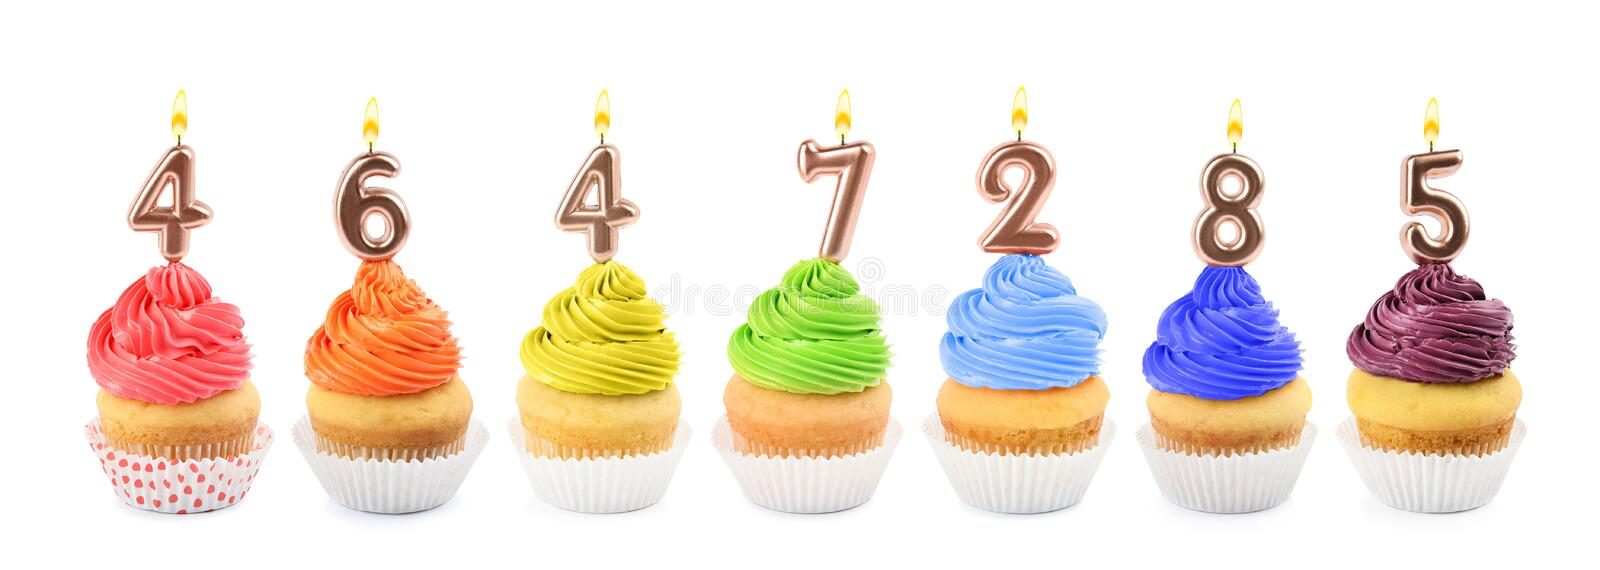 Set of different delicious birthday cupcakes with burning candles on white background. Banner design stock photography